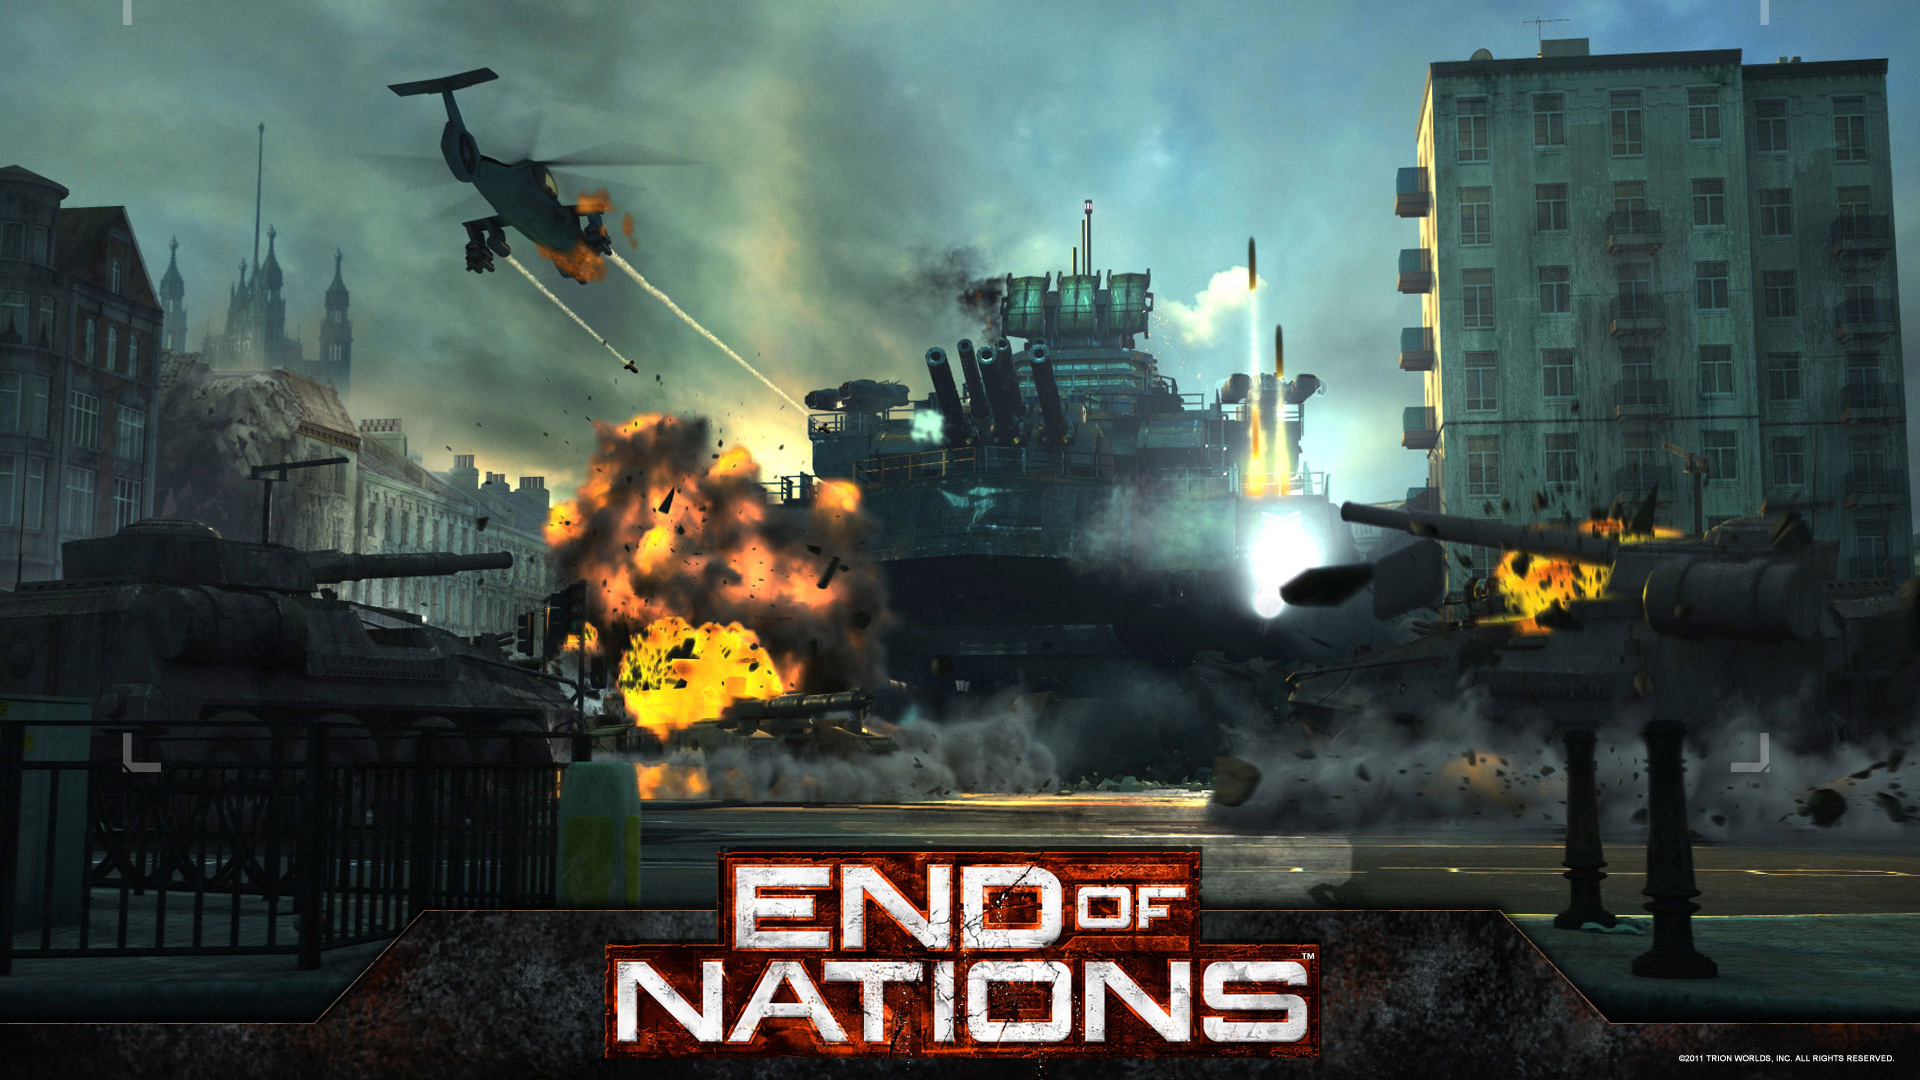 Free End of Nations Wallpaper in 1920x1080